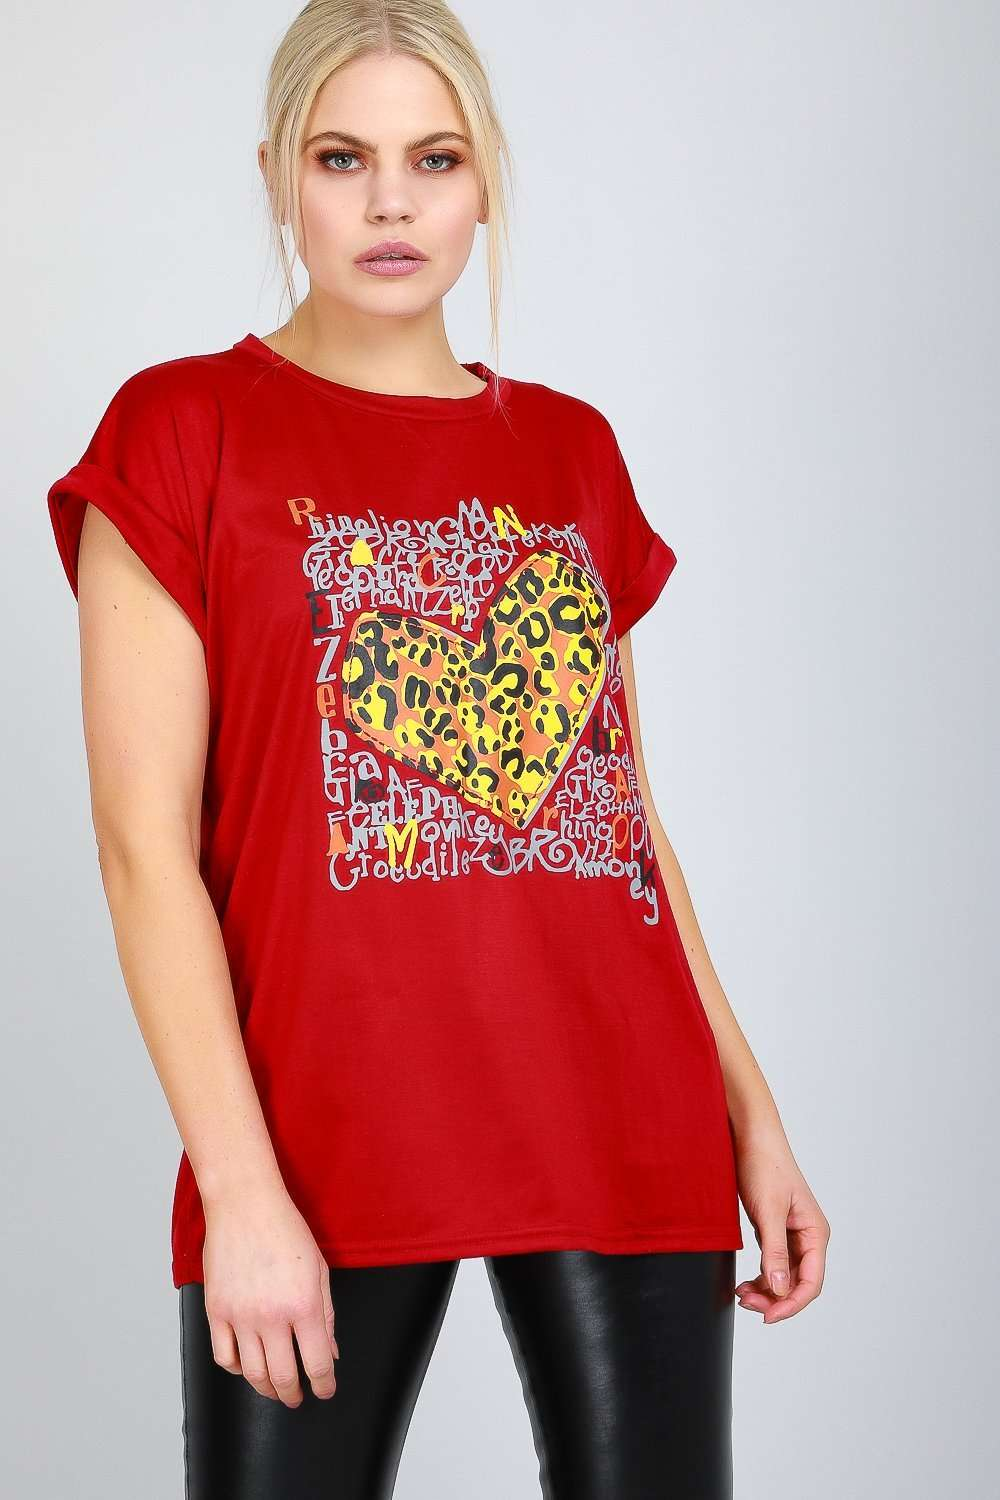 Leopard Graphic Print Red Baggy Tshirt - bejealous-com